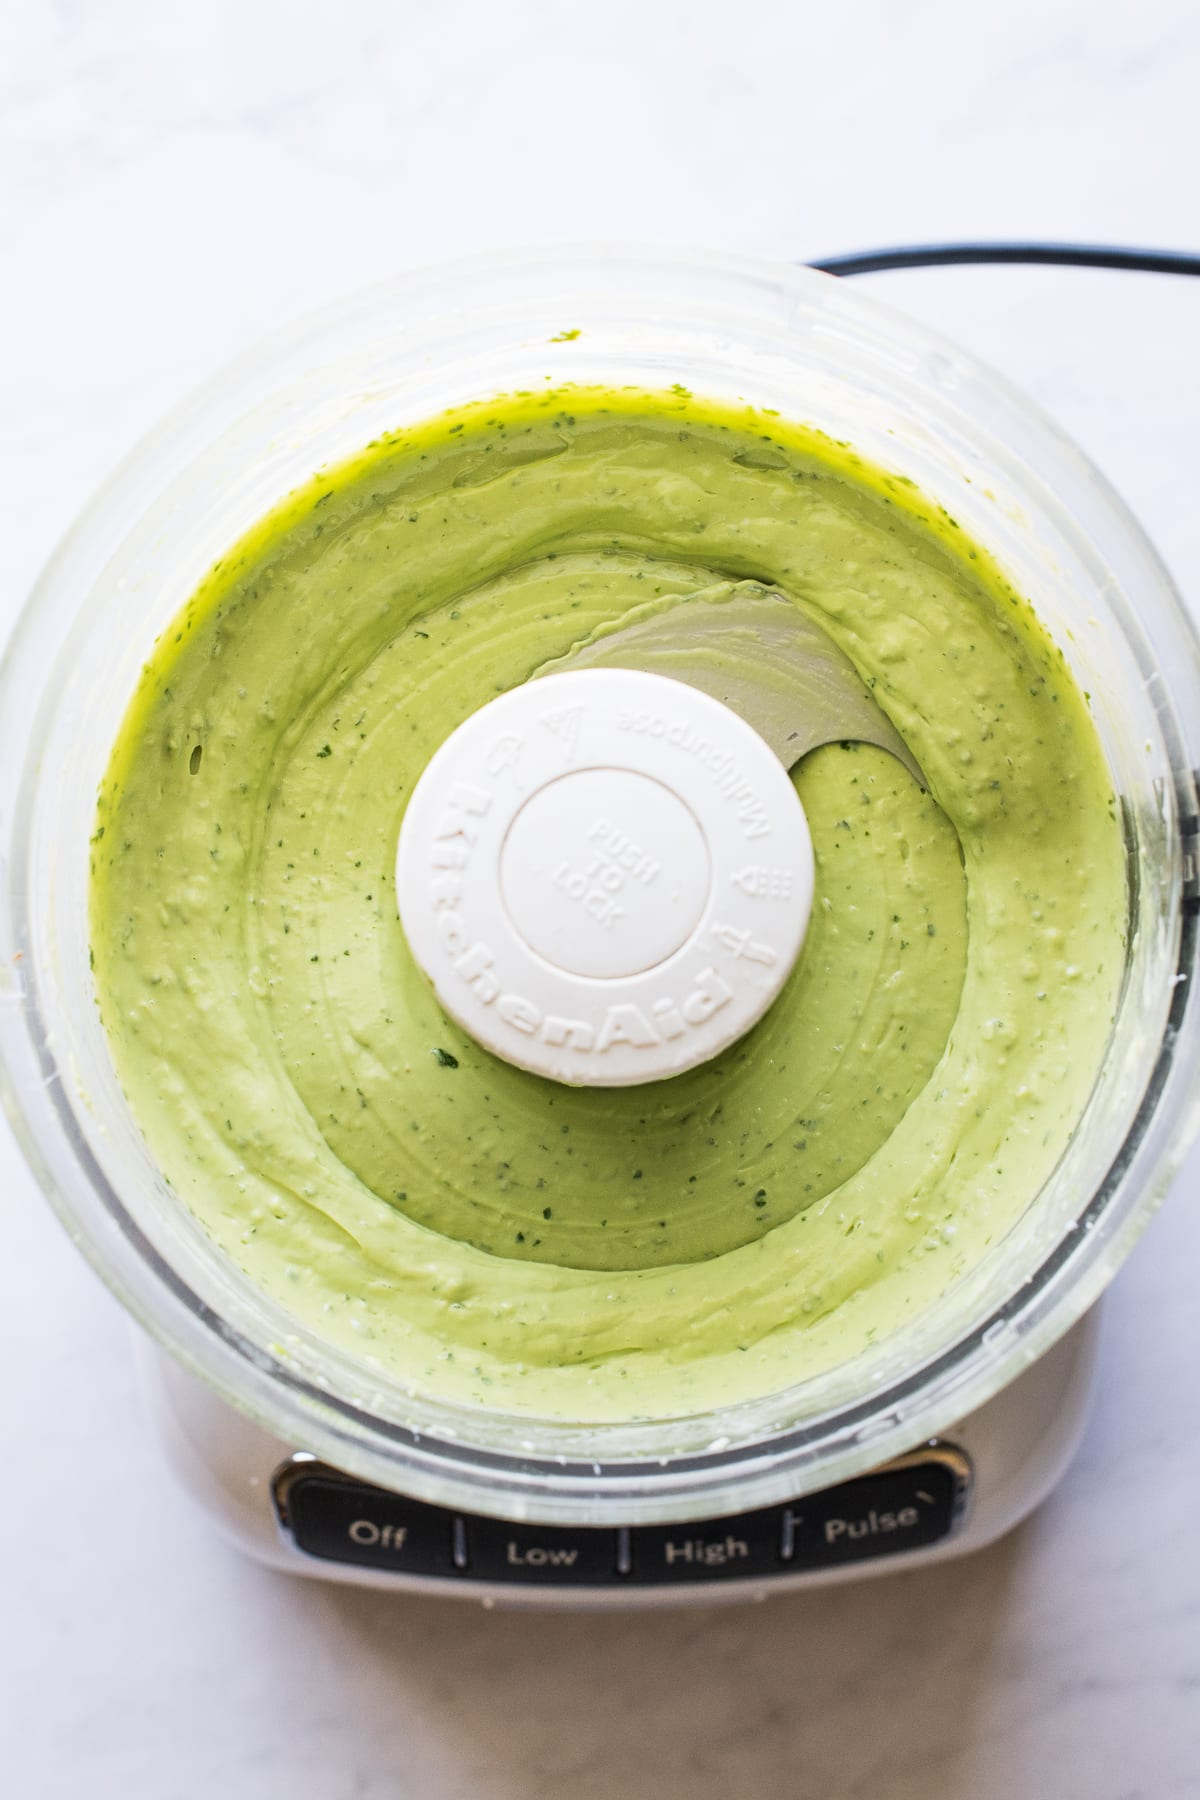 Avocado crema blended up in a food processor.